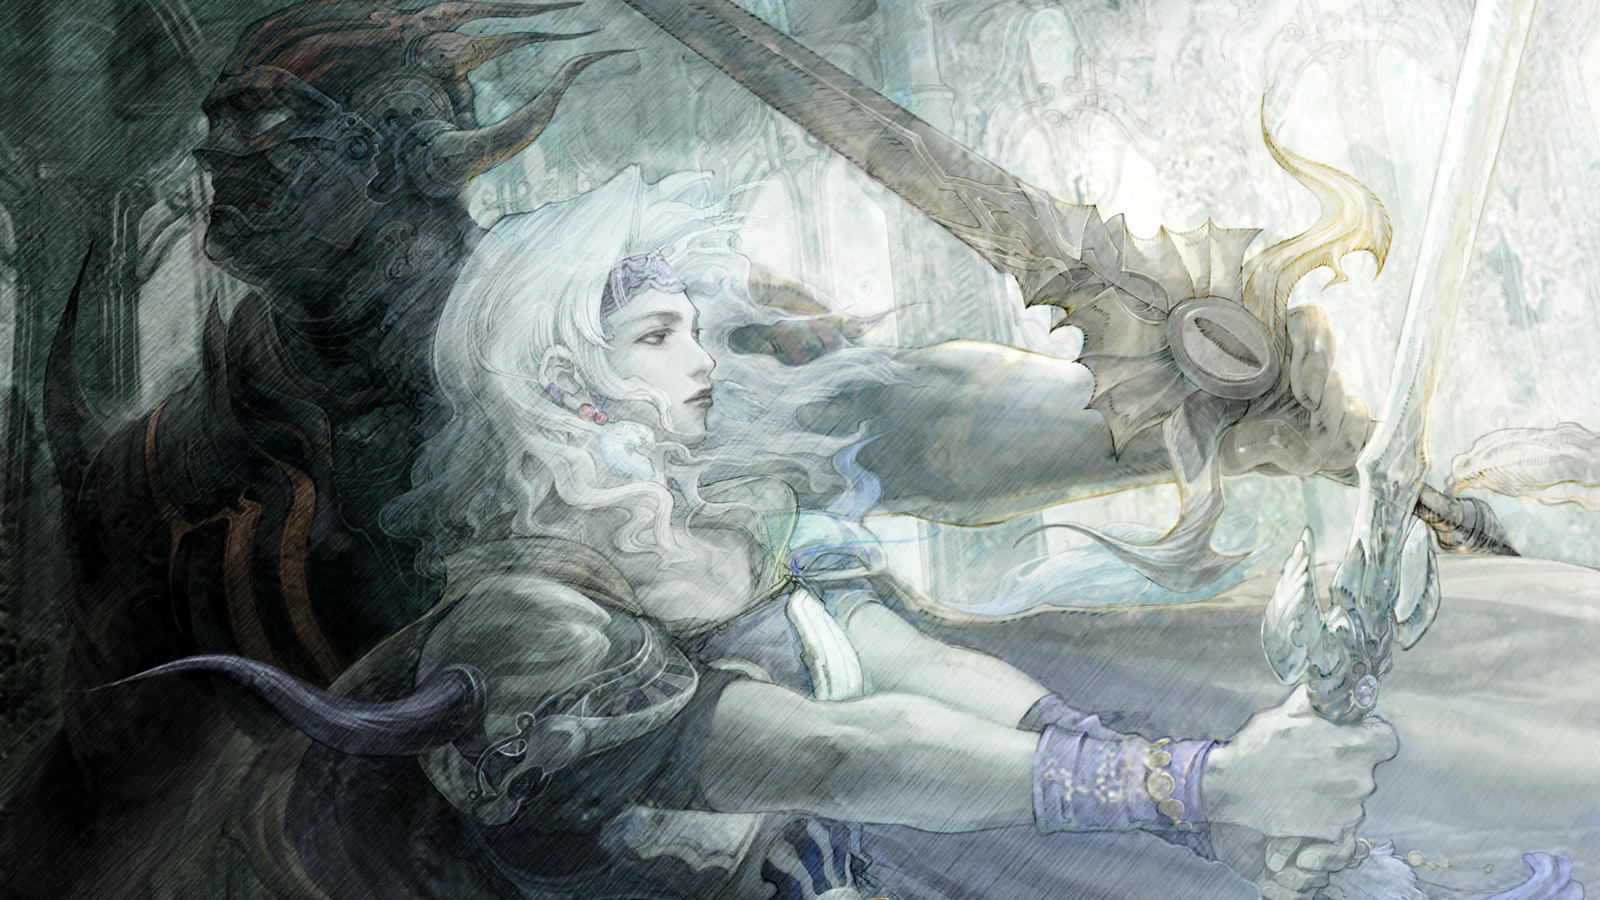 Free Final Fantasy IV Wallpaper in 1600x900